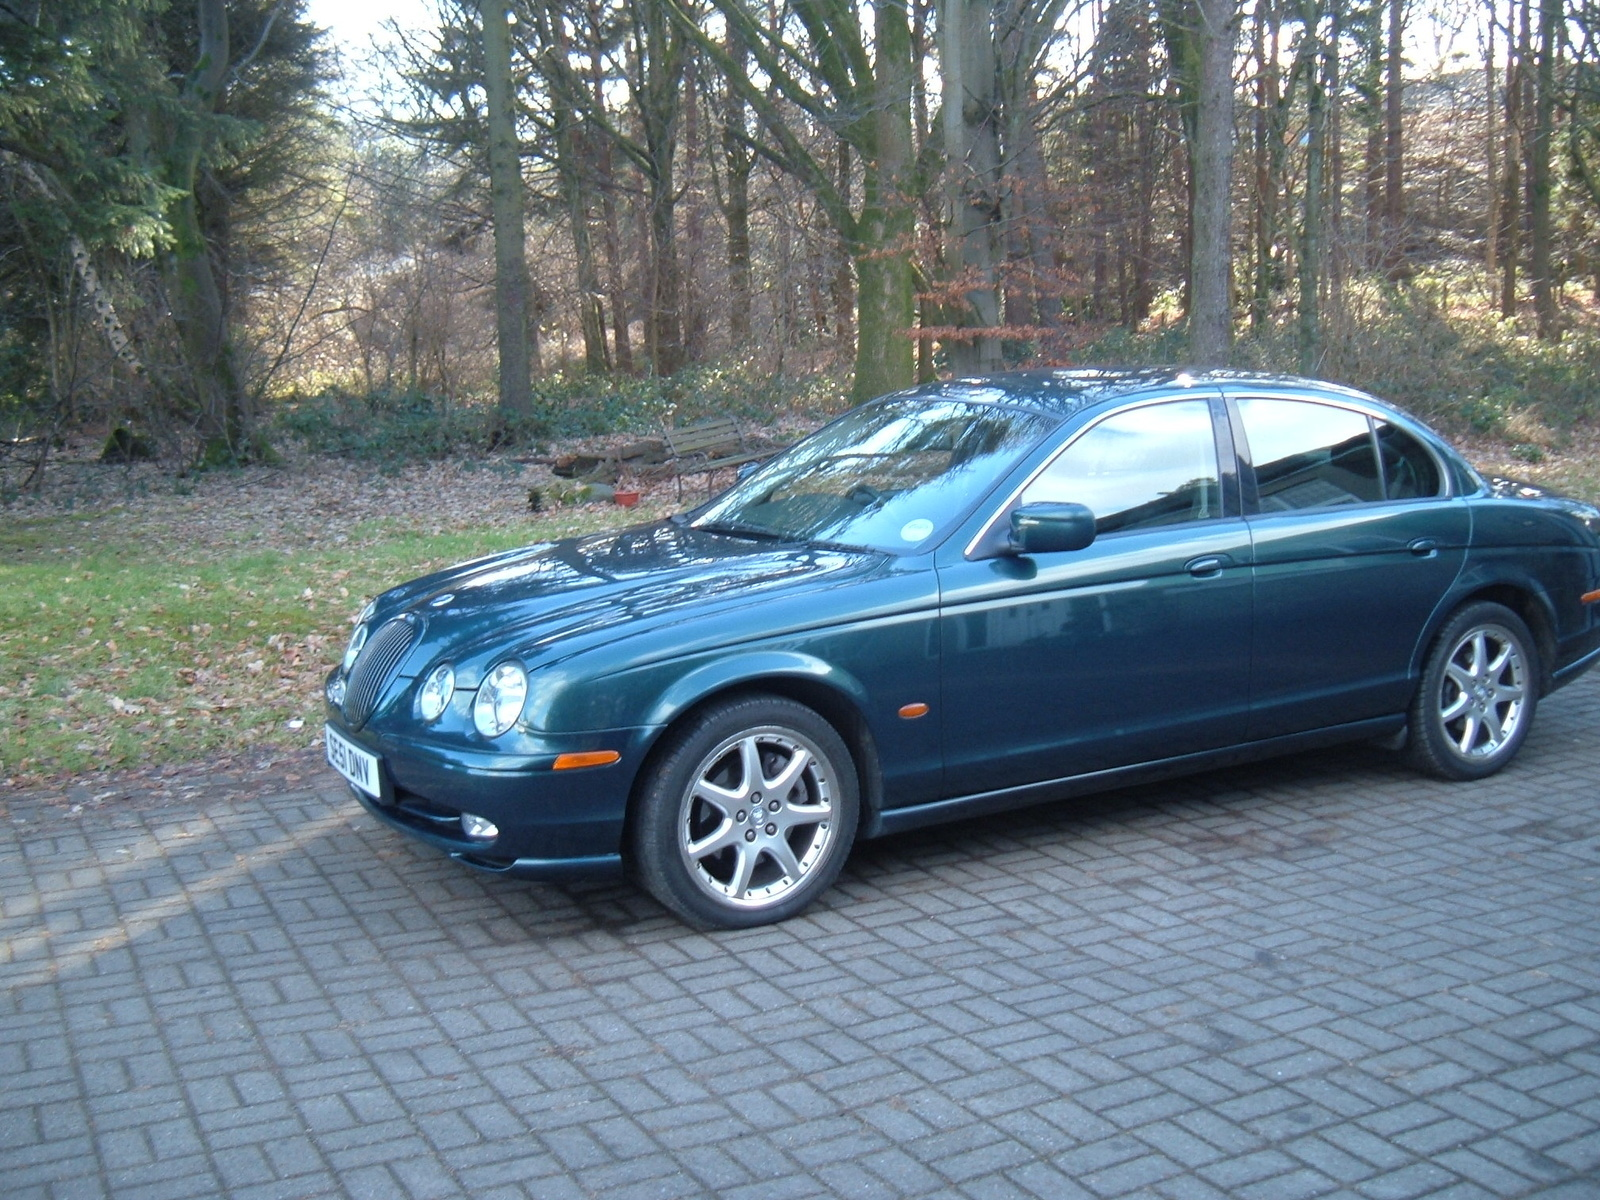 Jaguar s-type photo - 3